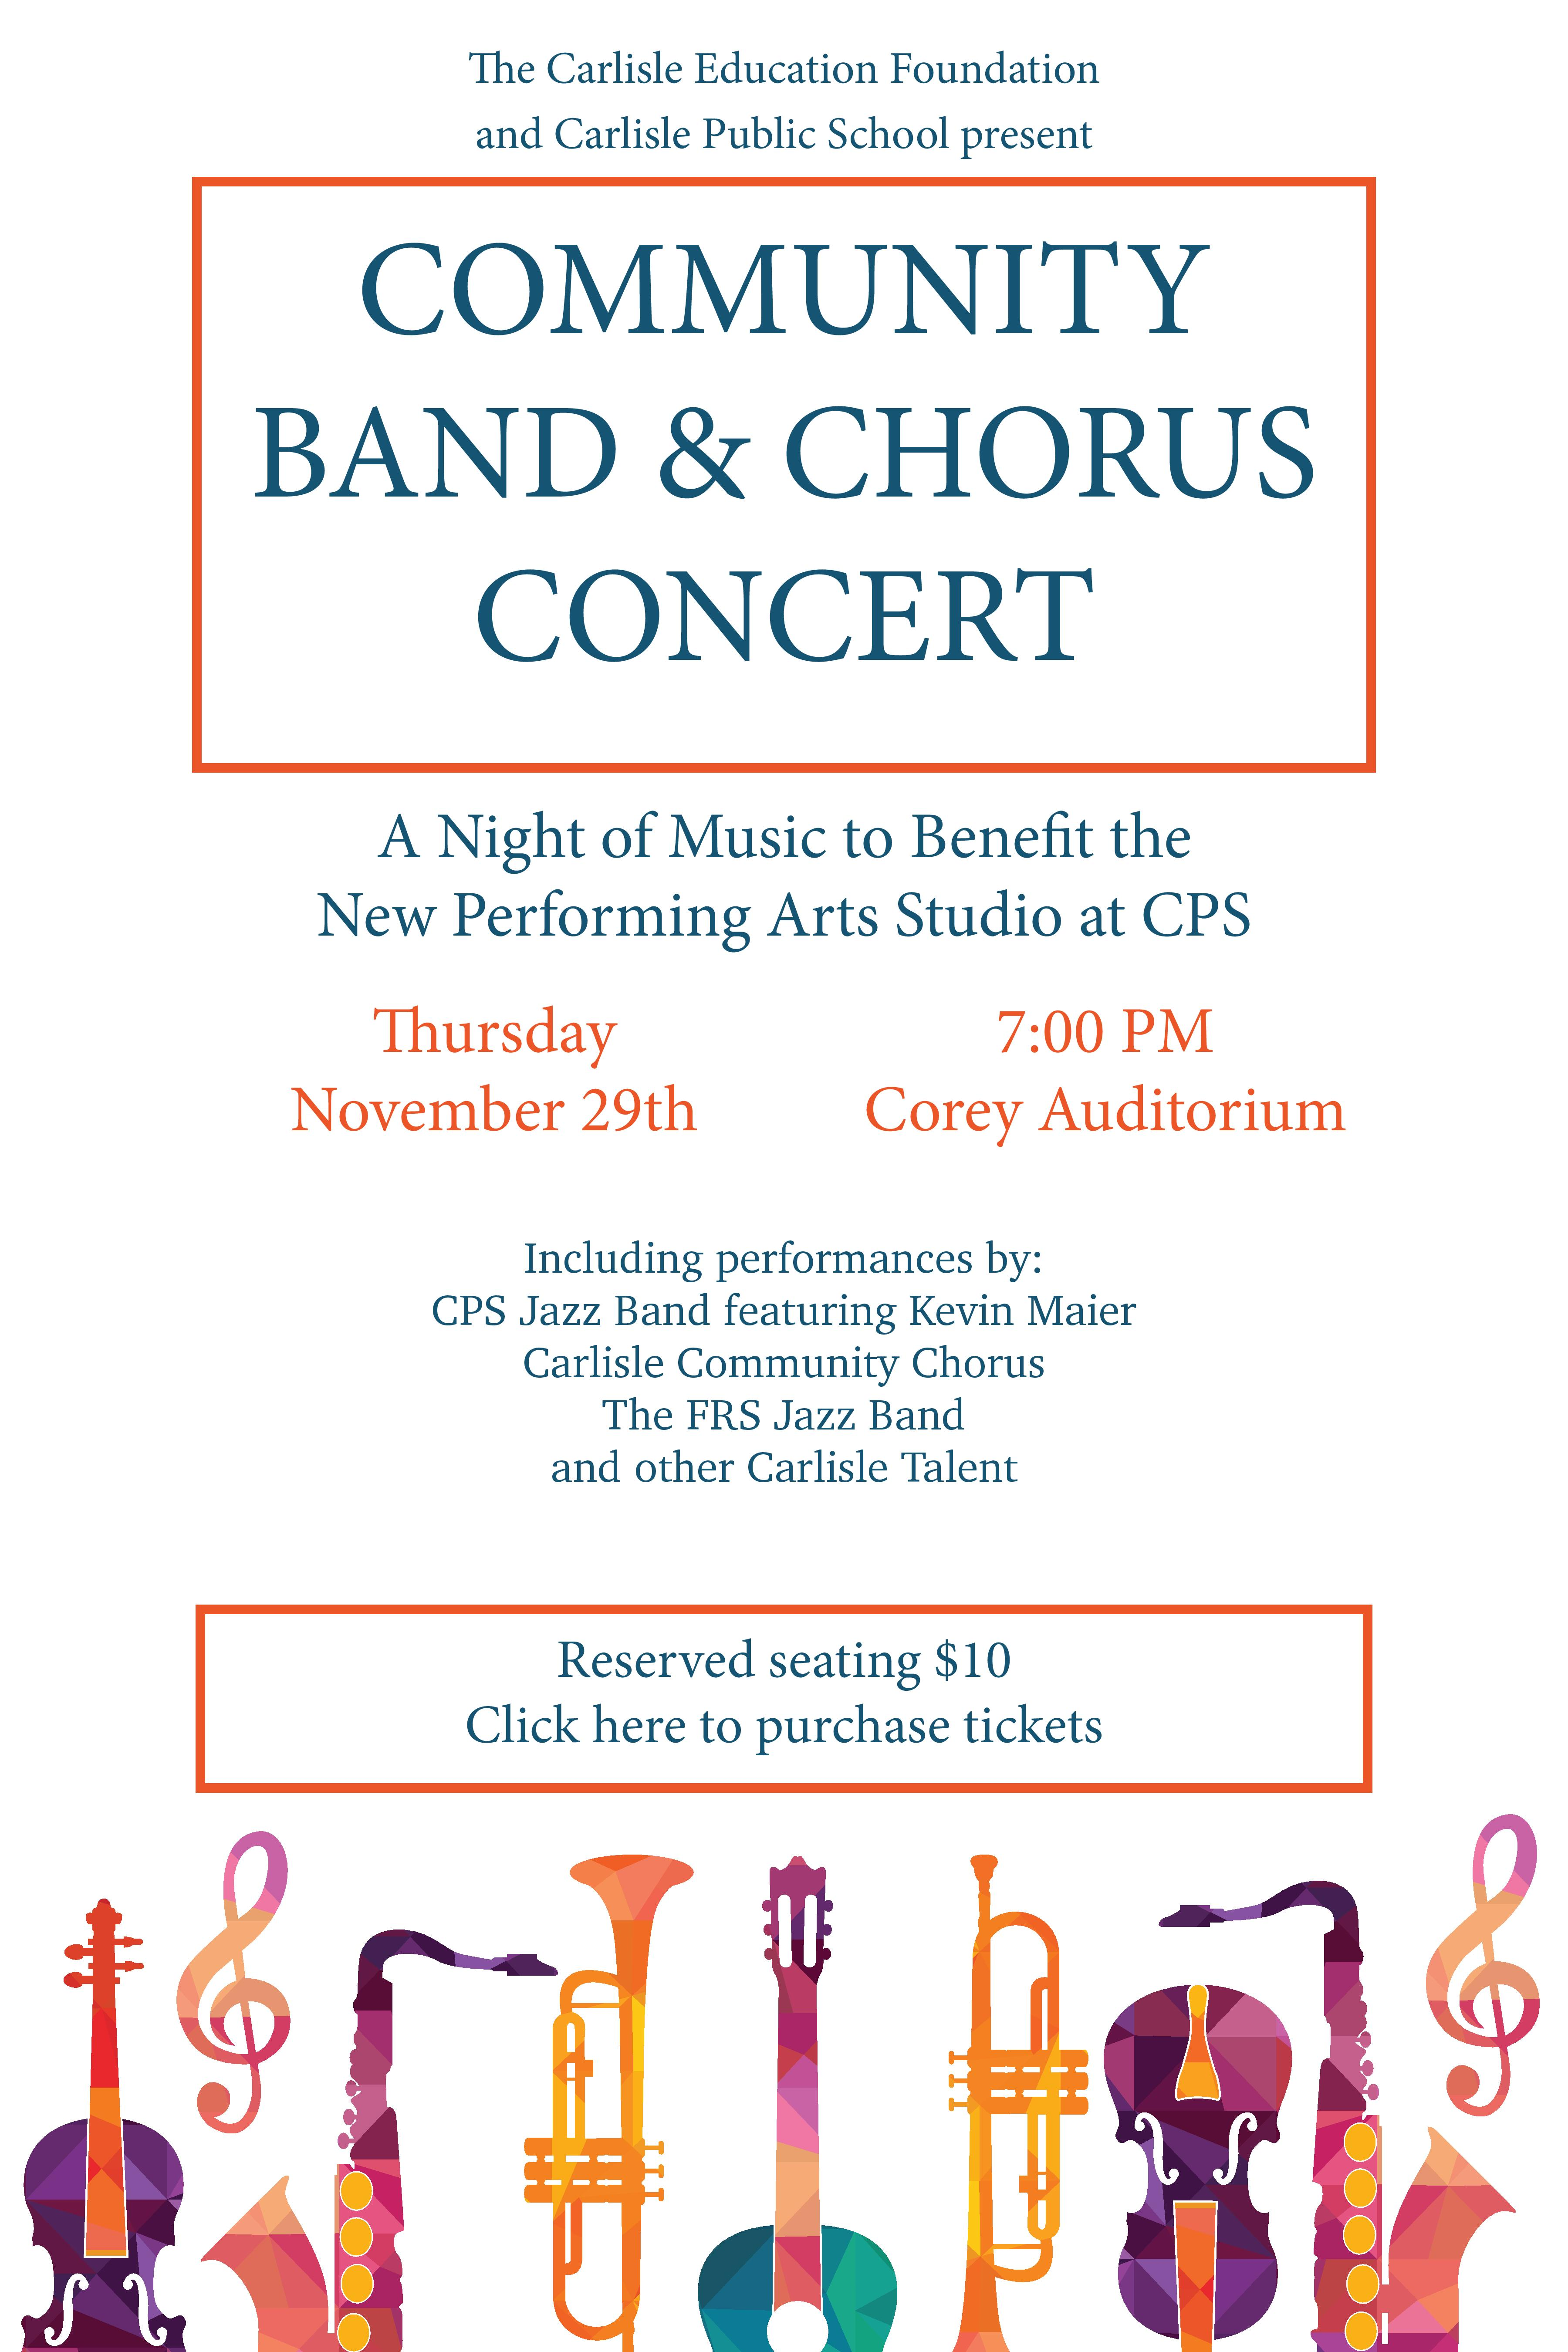 Community Band & Chorus Benefit Concert